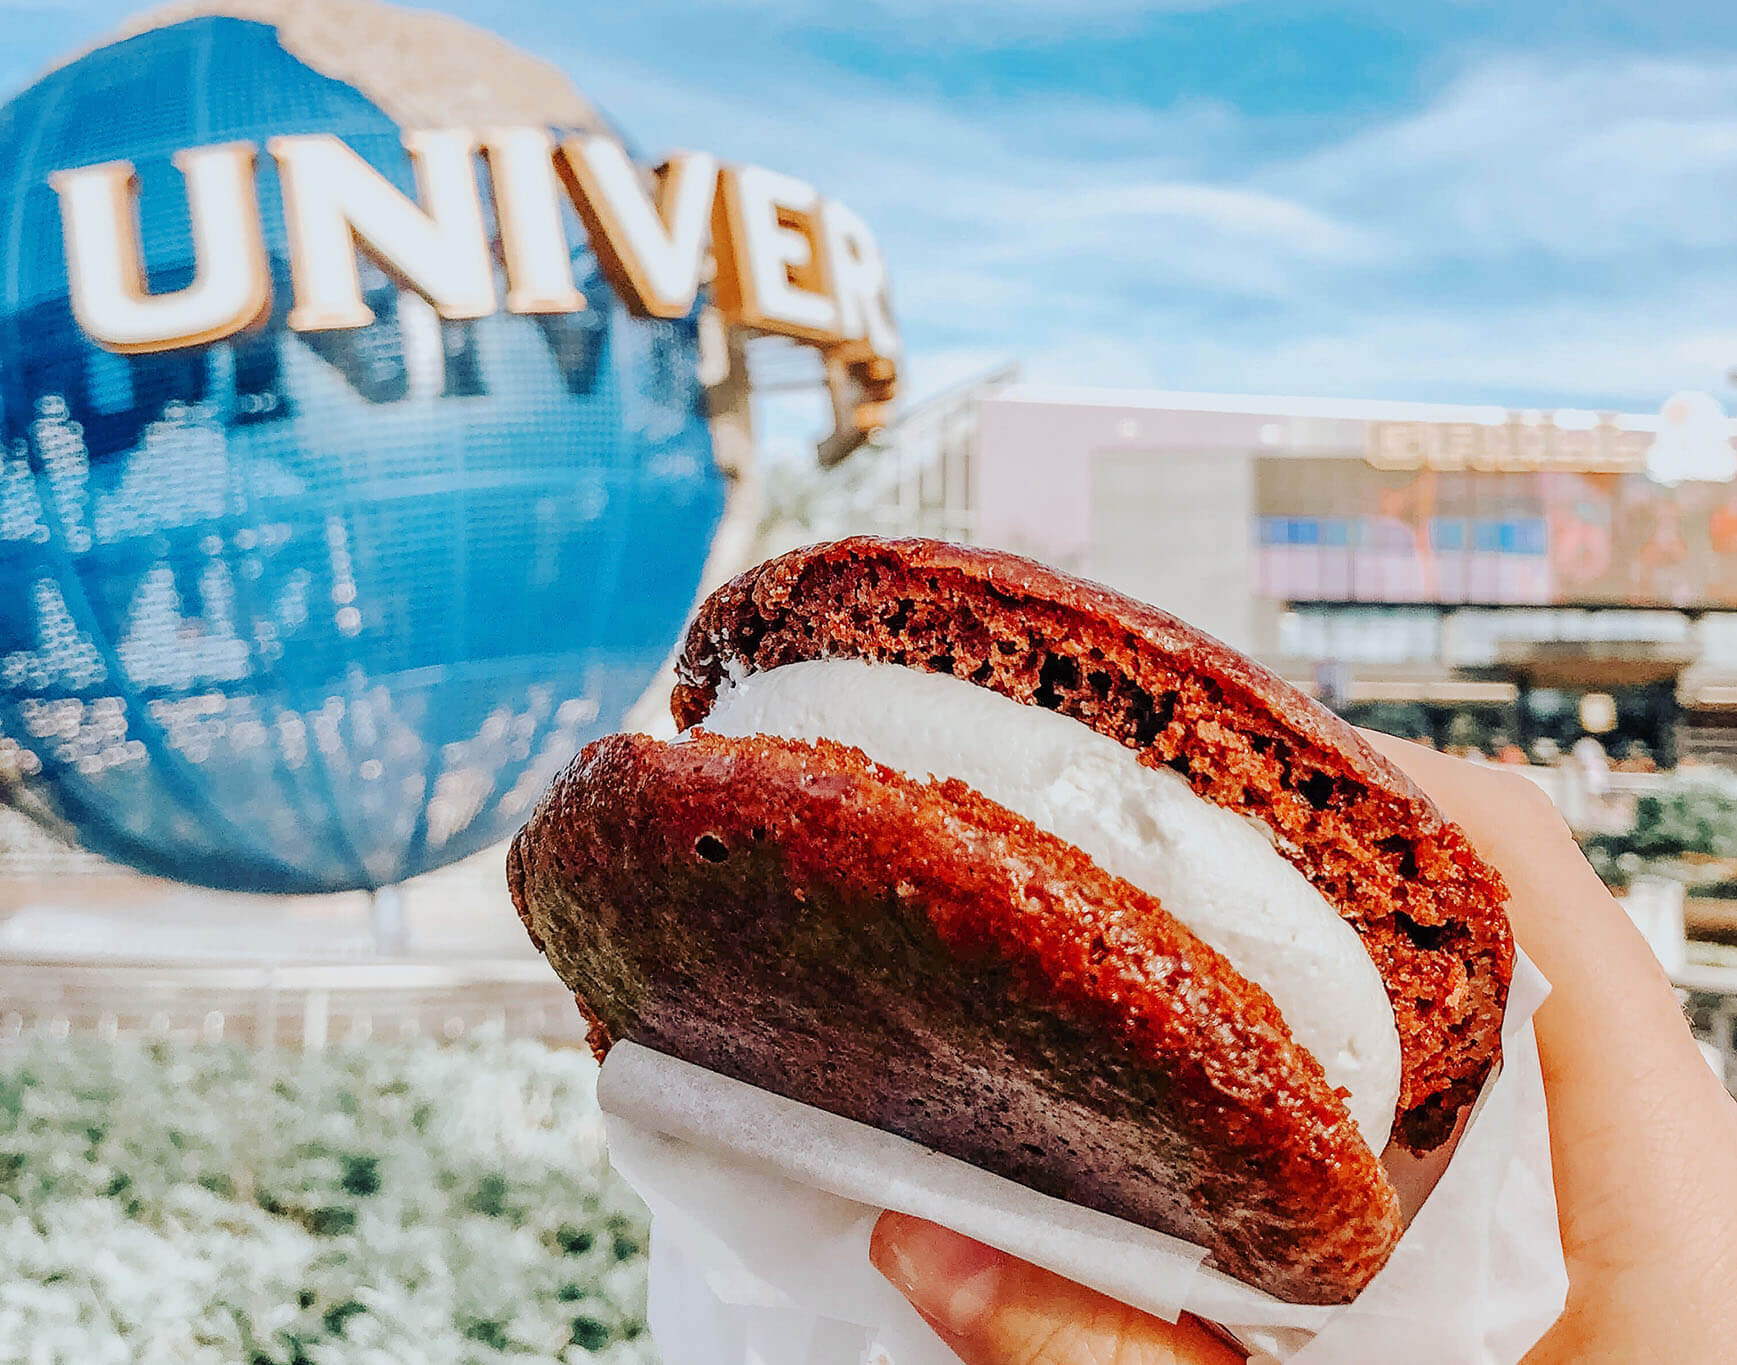 Giant chocolate and red velvet whoopie pie from Studio Sweets in Universal Studios Orlando